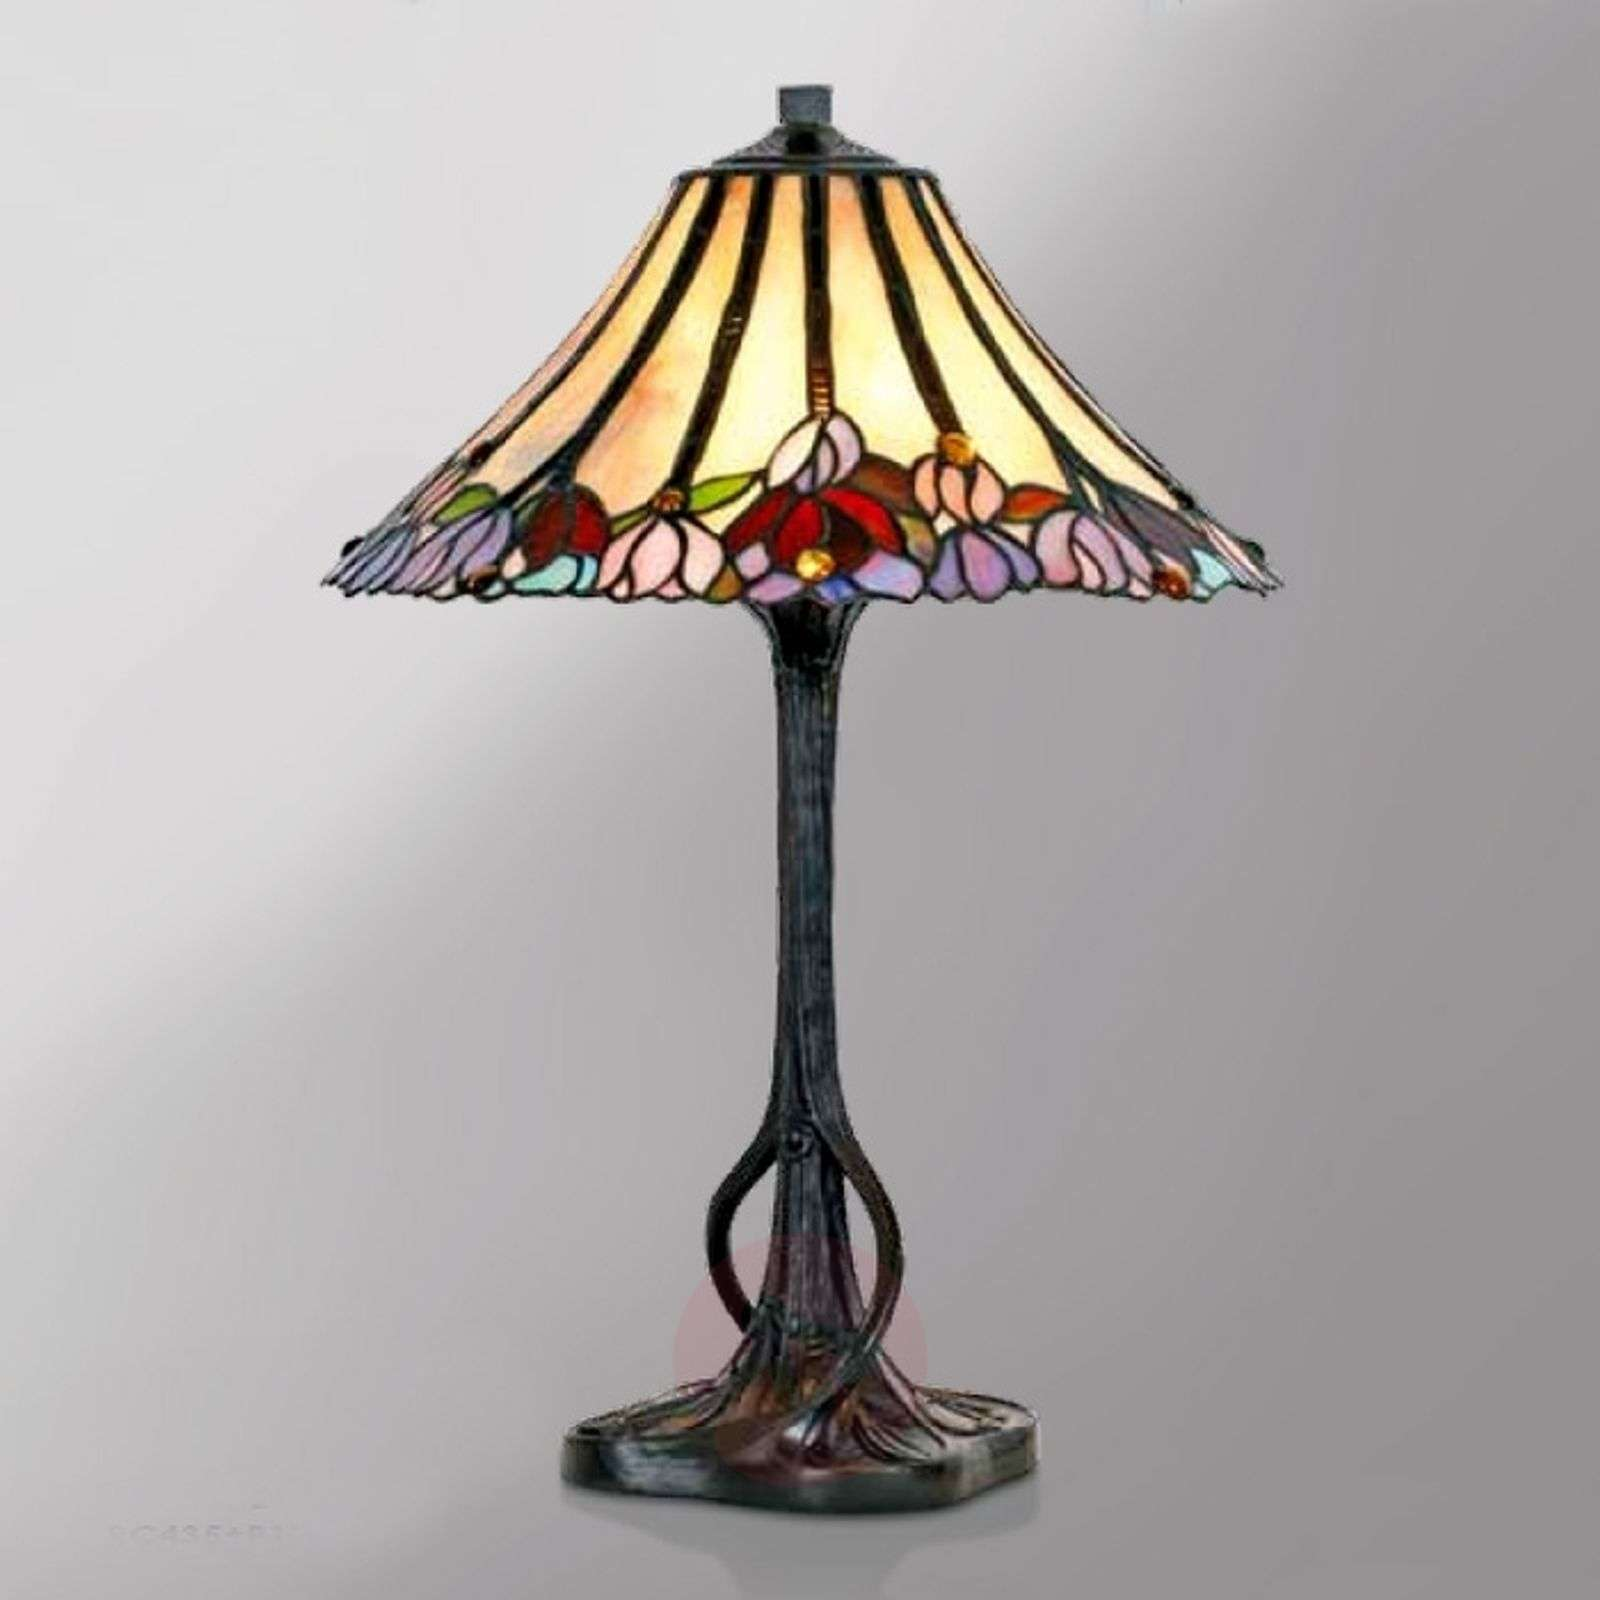 Tori table lamp in the Tiffany style-1032260-01